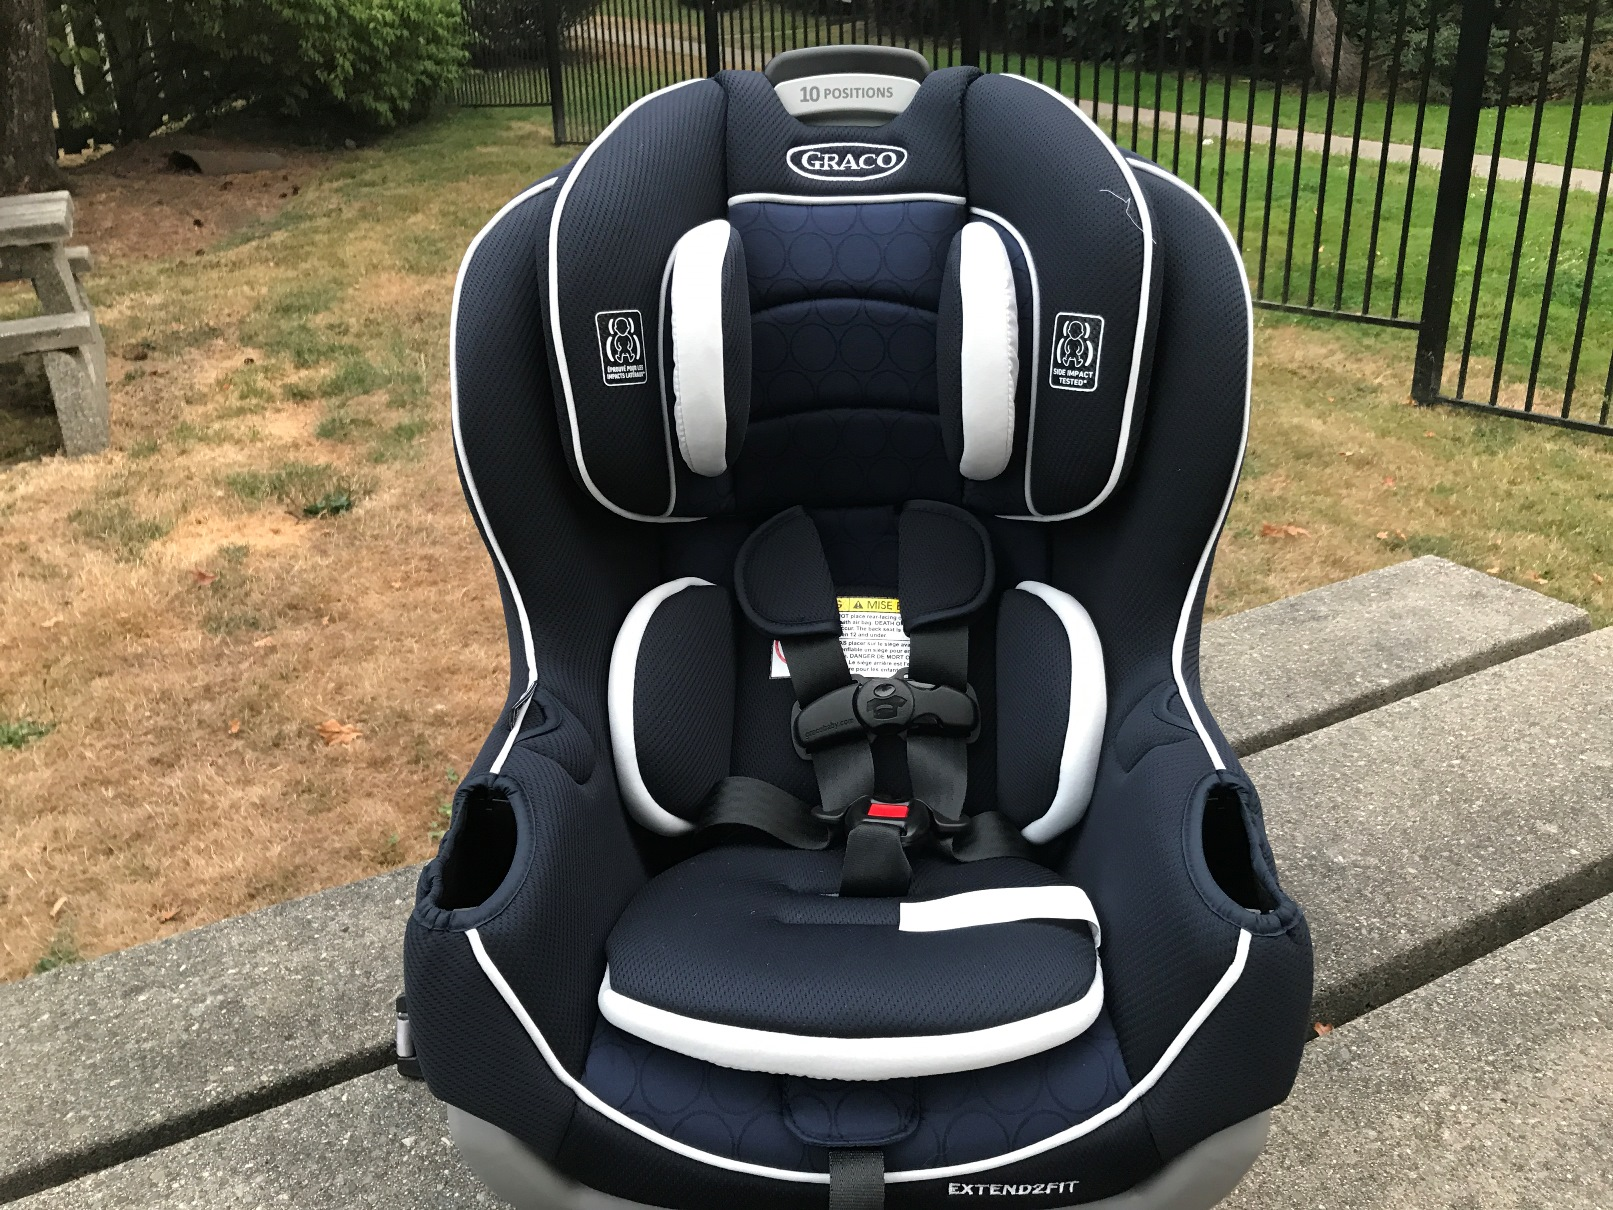 Graco Extend2Fit Car seat Review | Best Buy Blog